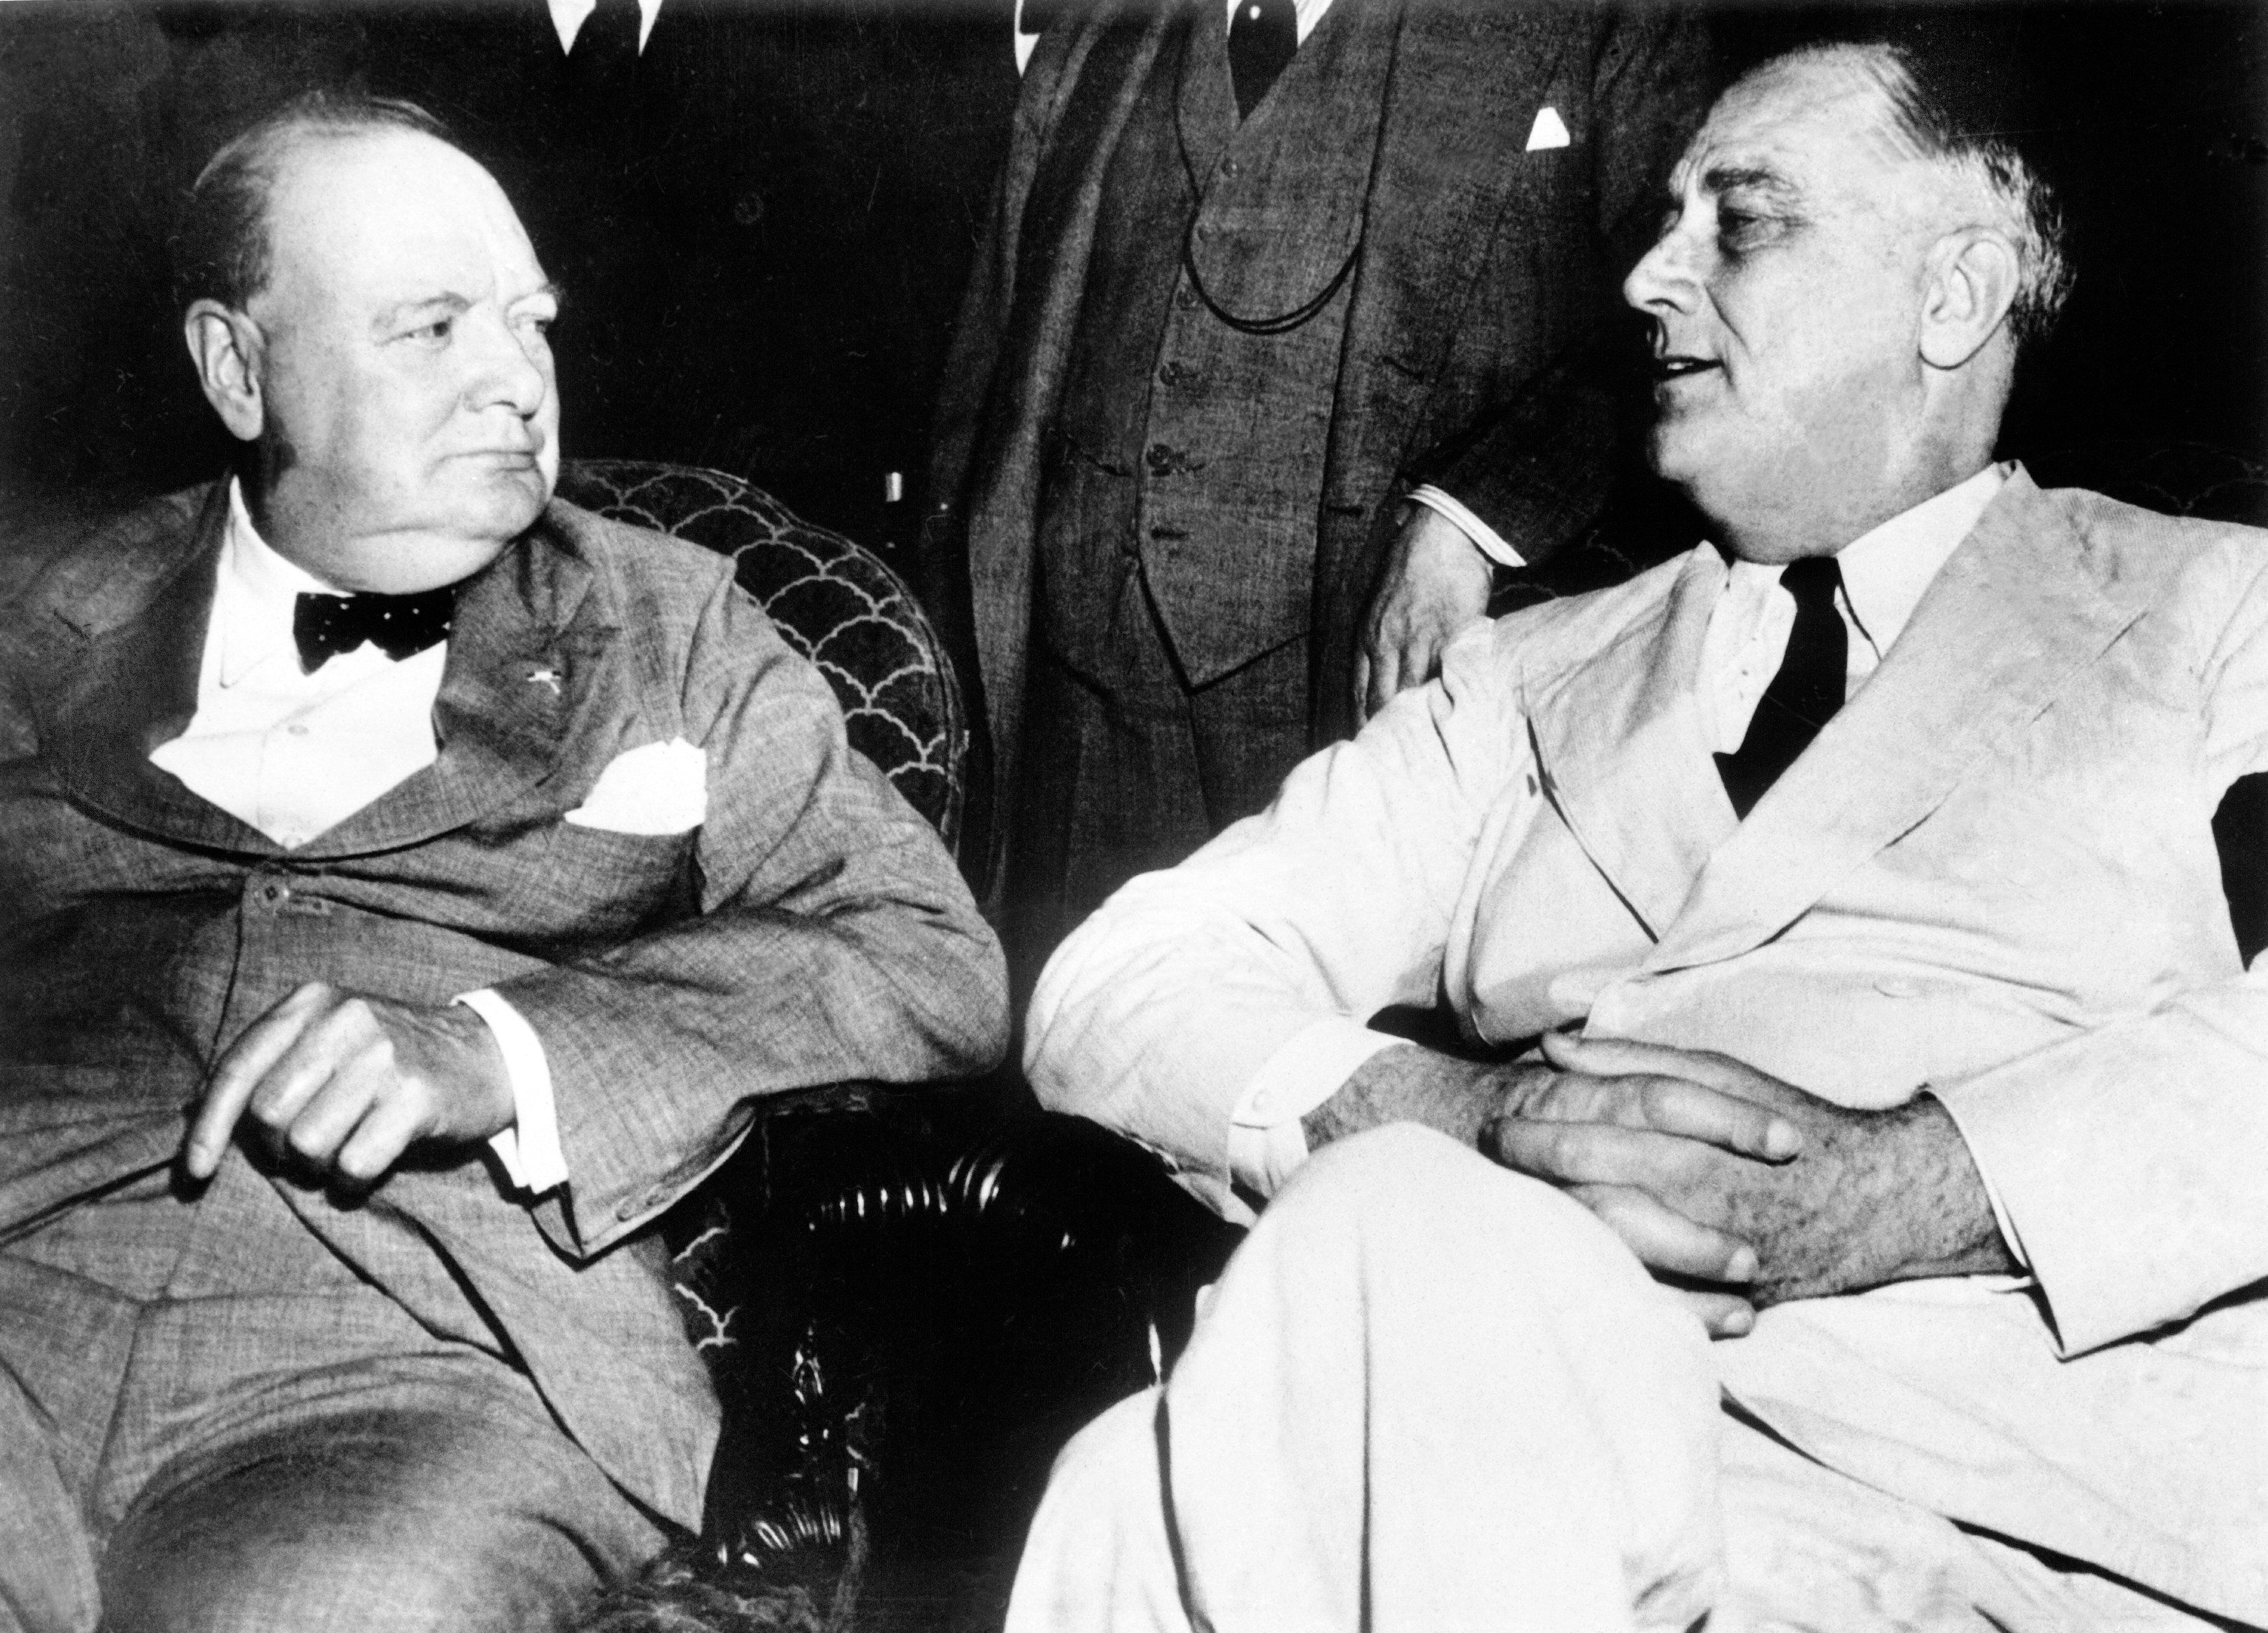 British Prime Minister Winston Churchill and American President Franklin D, Roosevelt at a special meeting of the Pacific War Council during World War Two on June 26, 1942.